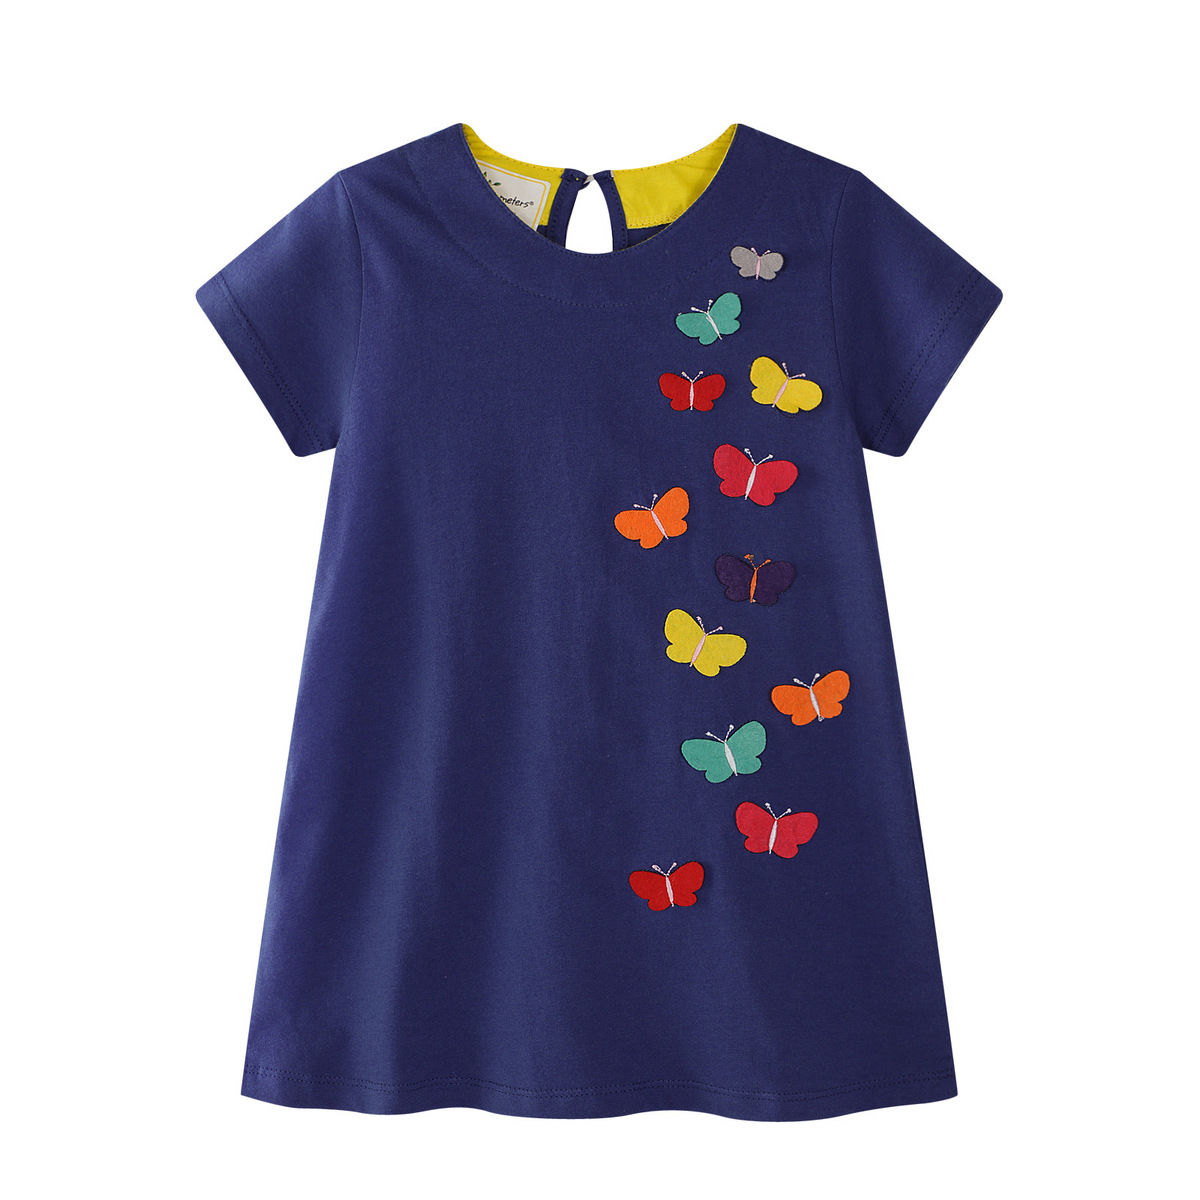 Nnilly Summer 2018 Favourite Brand Dresses Pattern Printing Pure Cotton Girl Lovely Clothes Toddler Dresses